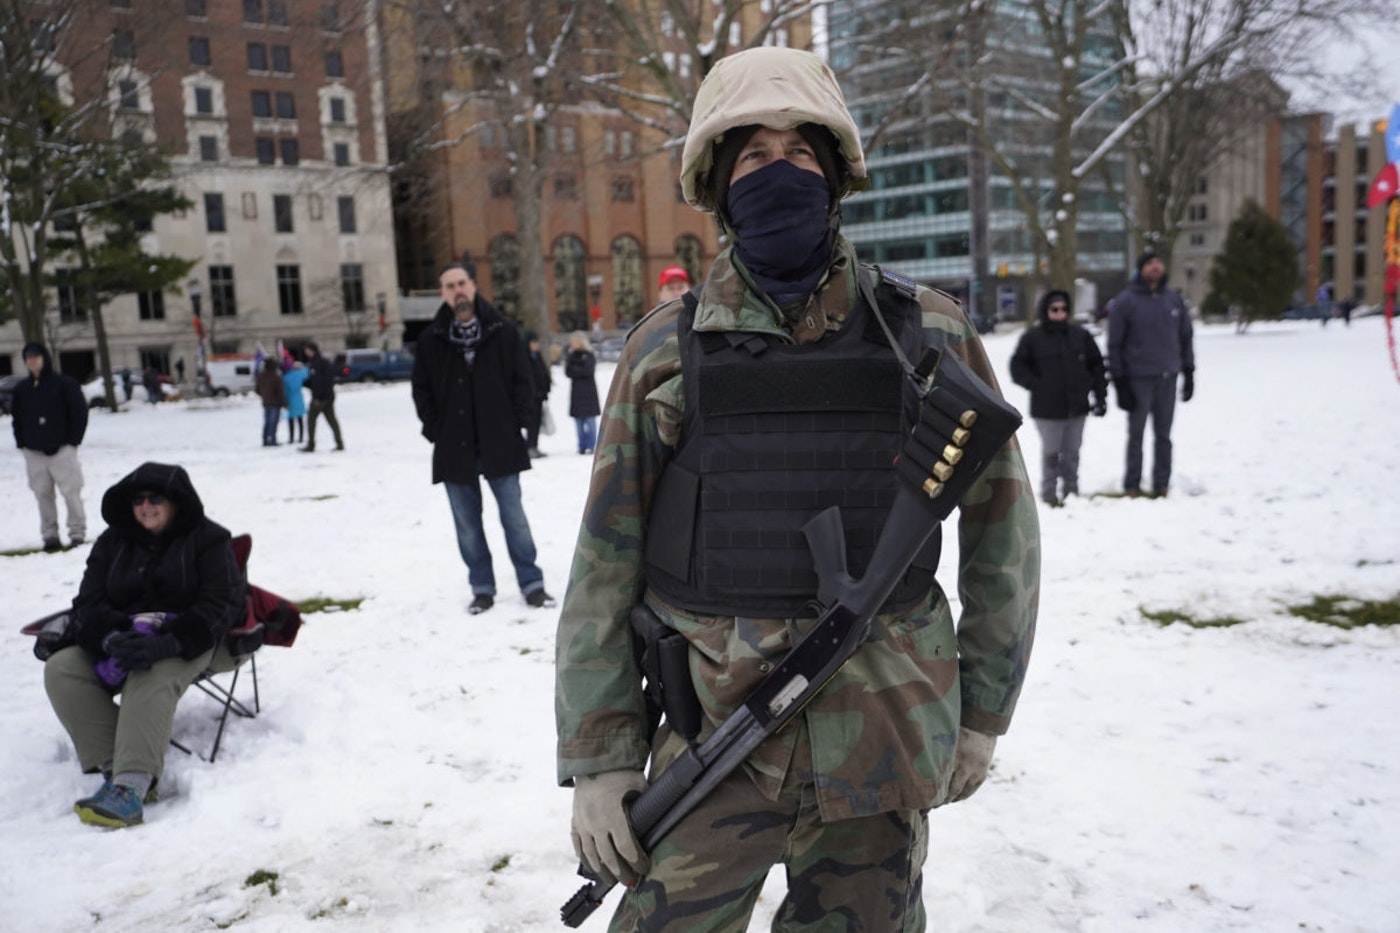 A man carries a shotgun at a rally in support of President Donald Trump at the state capitol in Lansing, Mich., Wednesday, Jan. 6, 2021. (AP Photo/Paul Sancya)